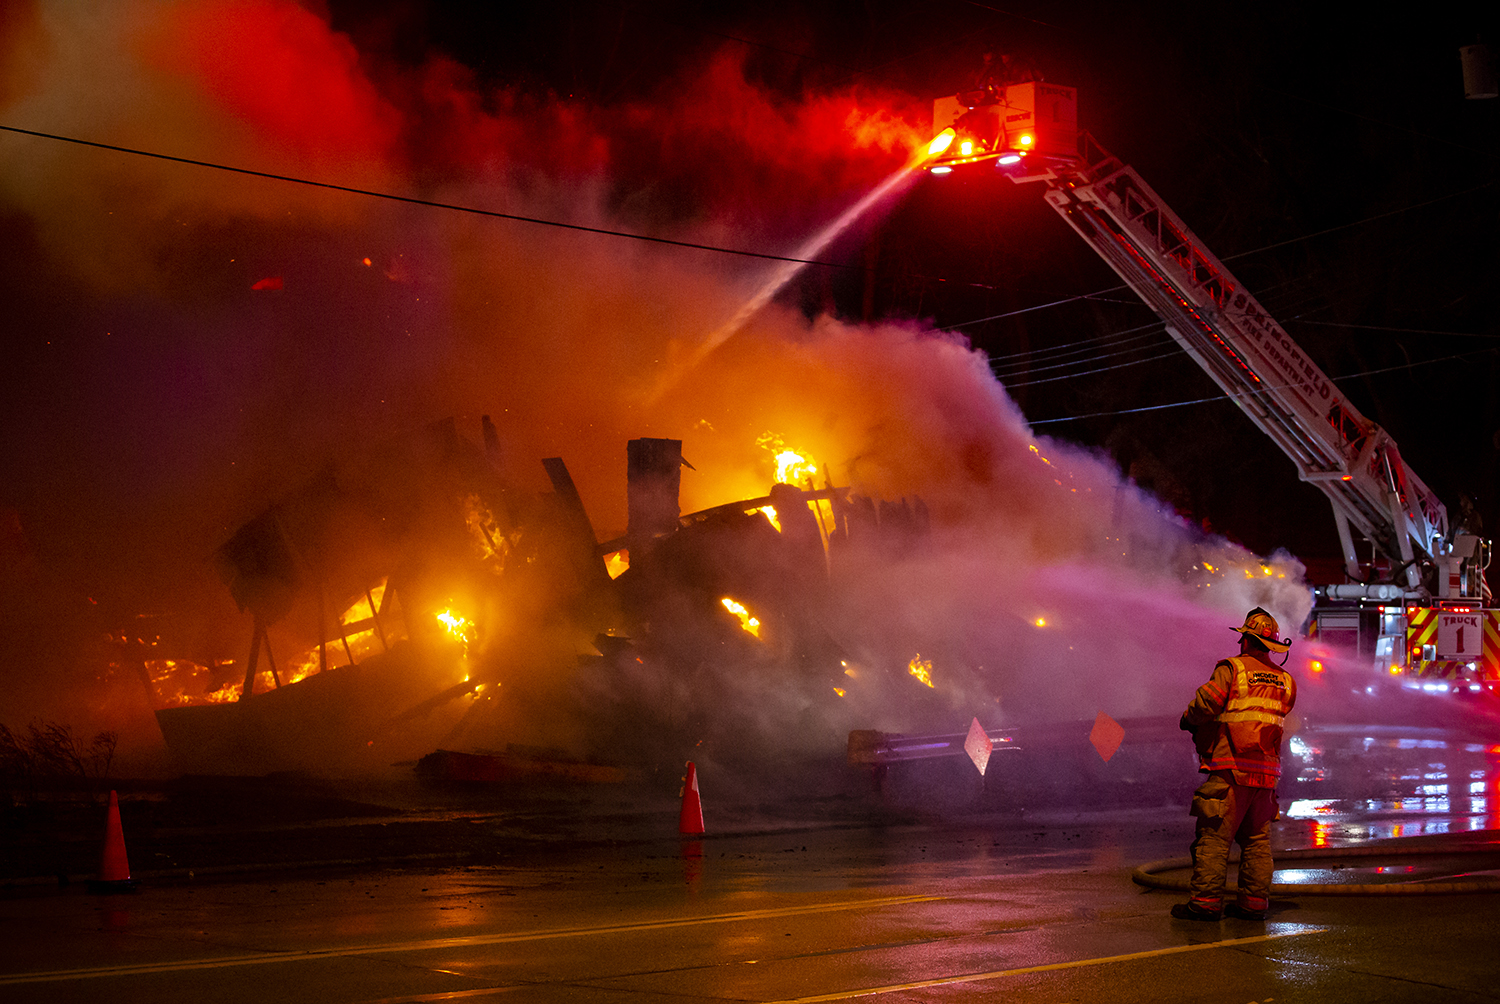 Truck One from the Springfield Fire Department contends with sustained winds over 20 mph as they attack a structure fire from the air with an aerial bucket as the fire fully engulfs a building at the corner of South Second Street and East Laurel Street, Sunday, March 10, 2019, in Springfield, Ill.